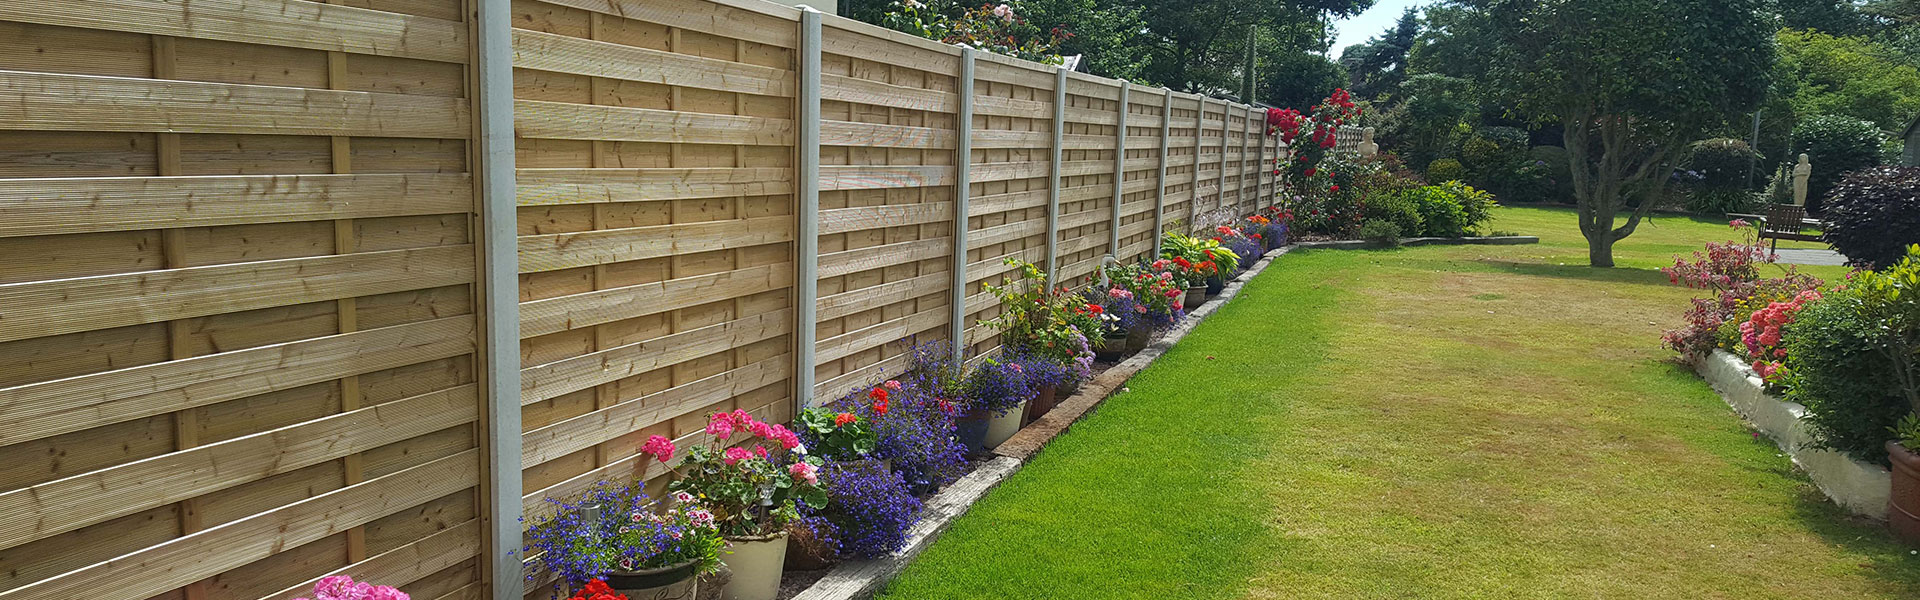 Guernsey garden fencing header photo of a beautiful wooden fence with concrete posts.